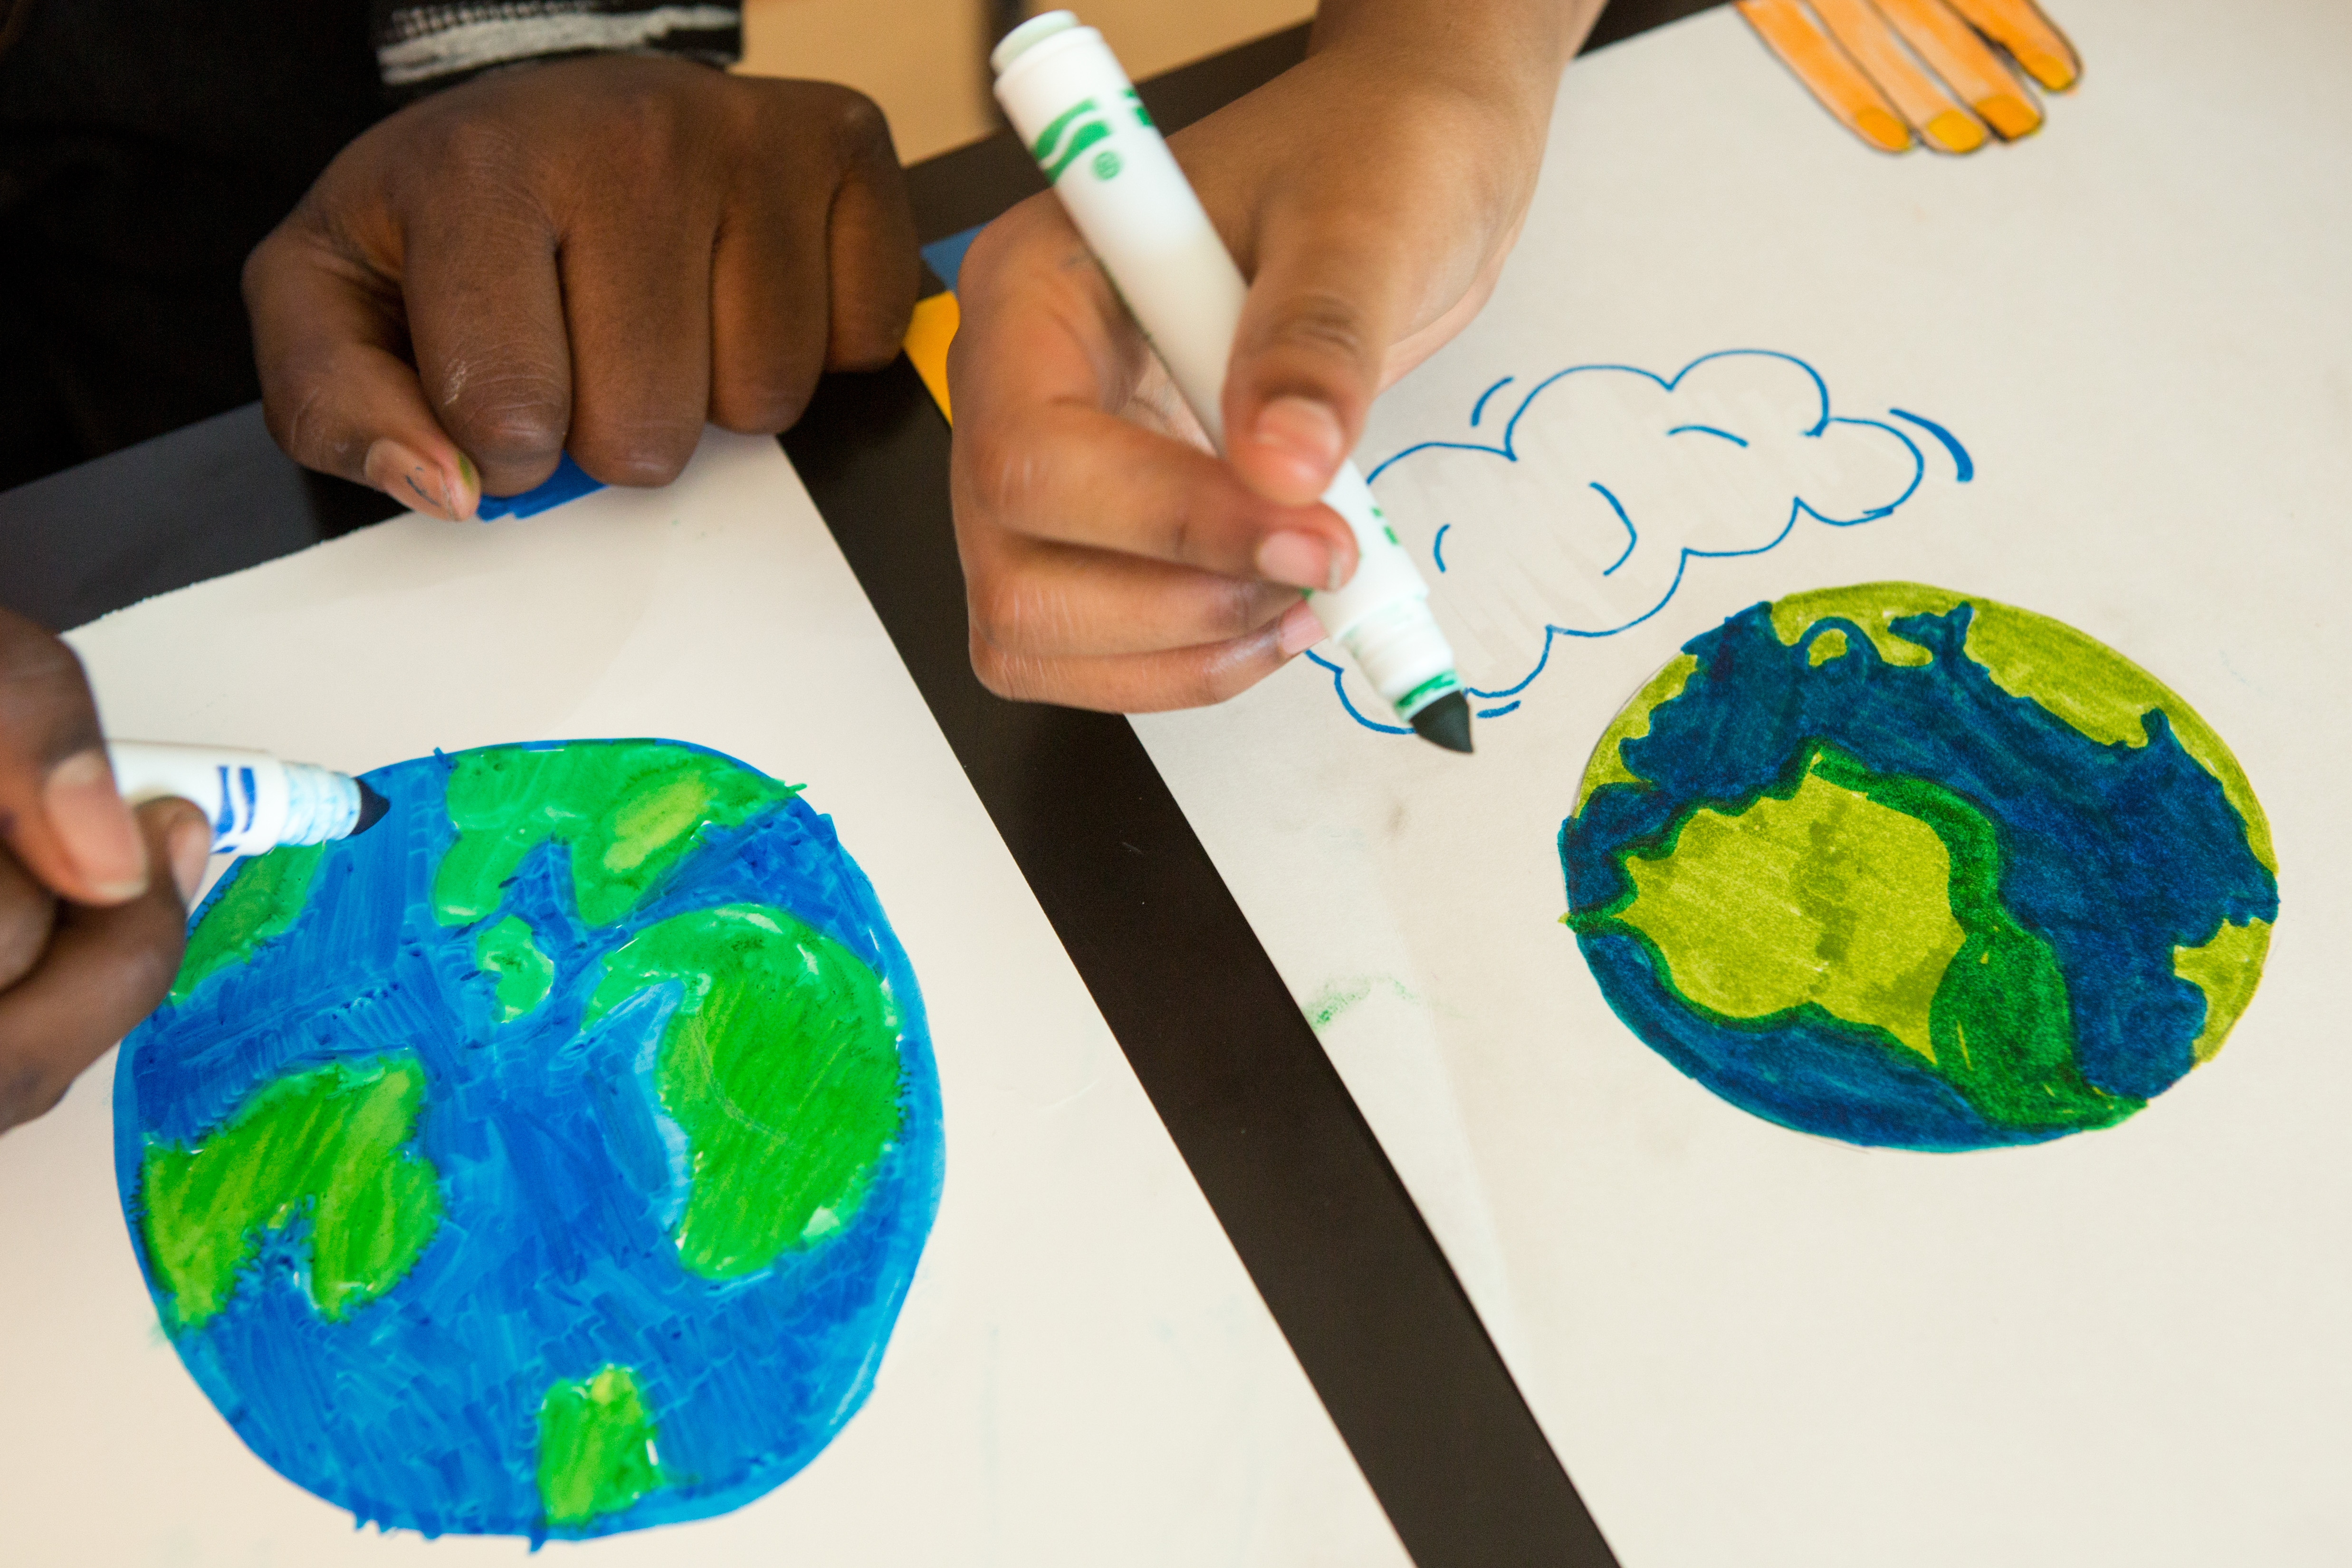 Two student hands drawing pictures of the Earth